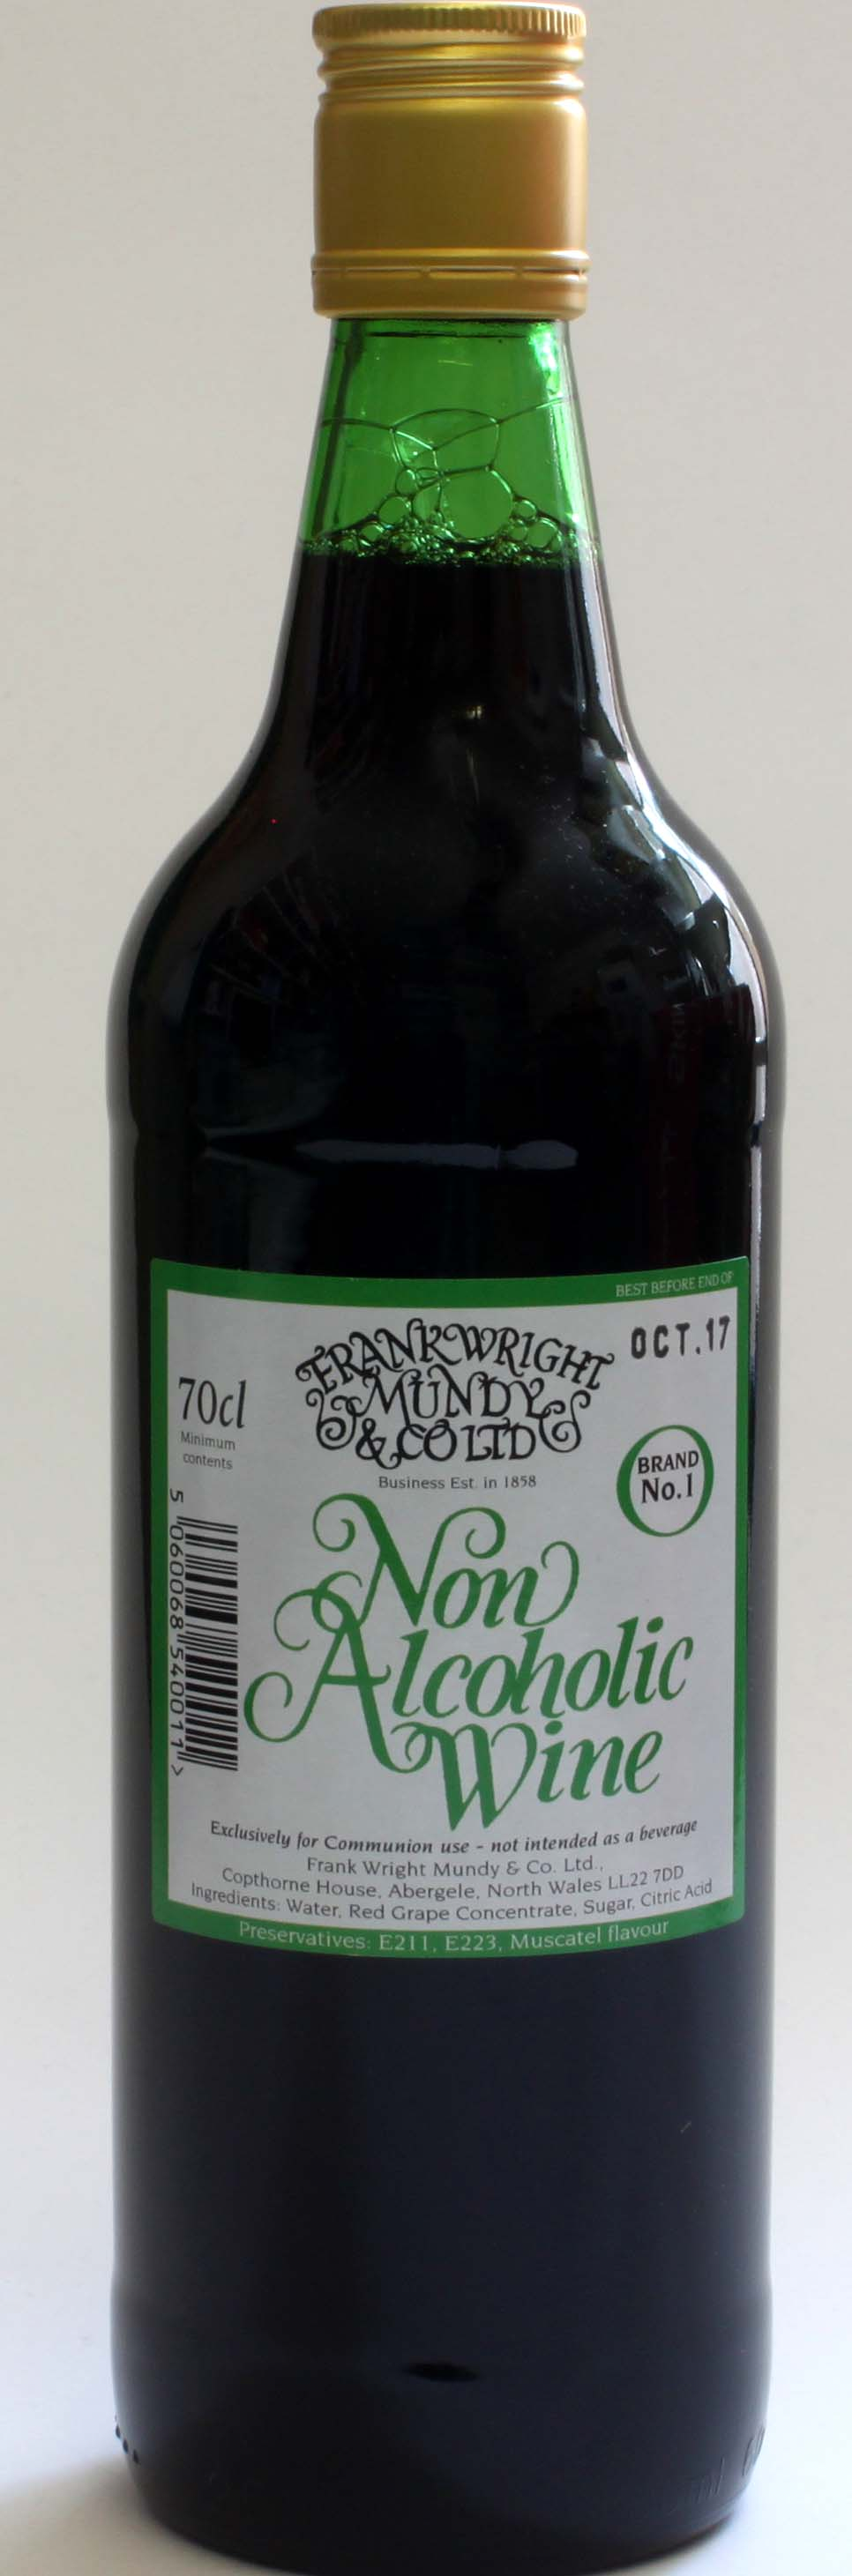 Frank Wright Mundy & Co Ltd Non Alcoholic Wine - 70 cl